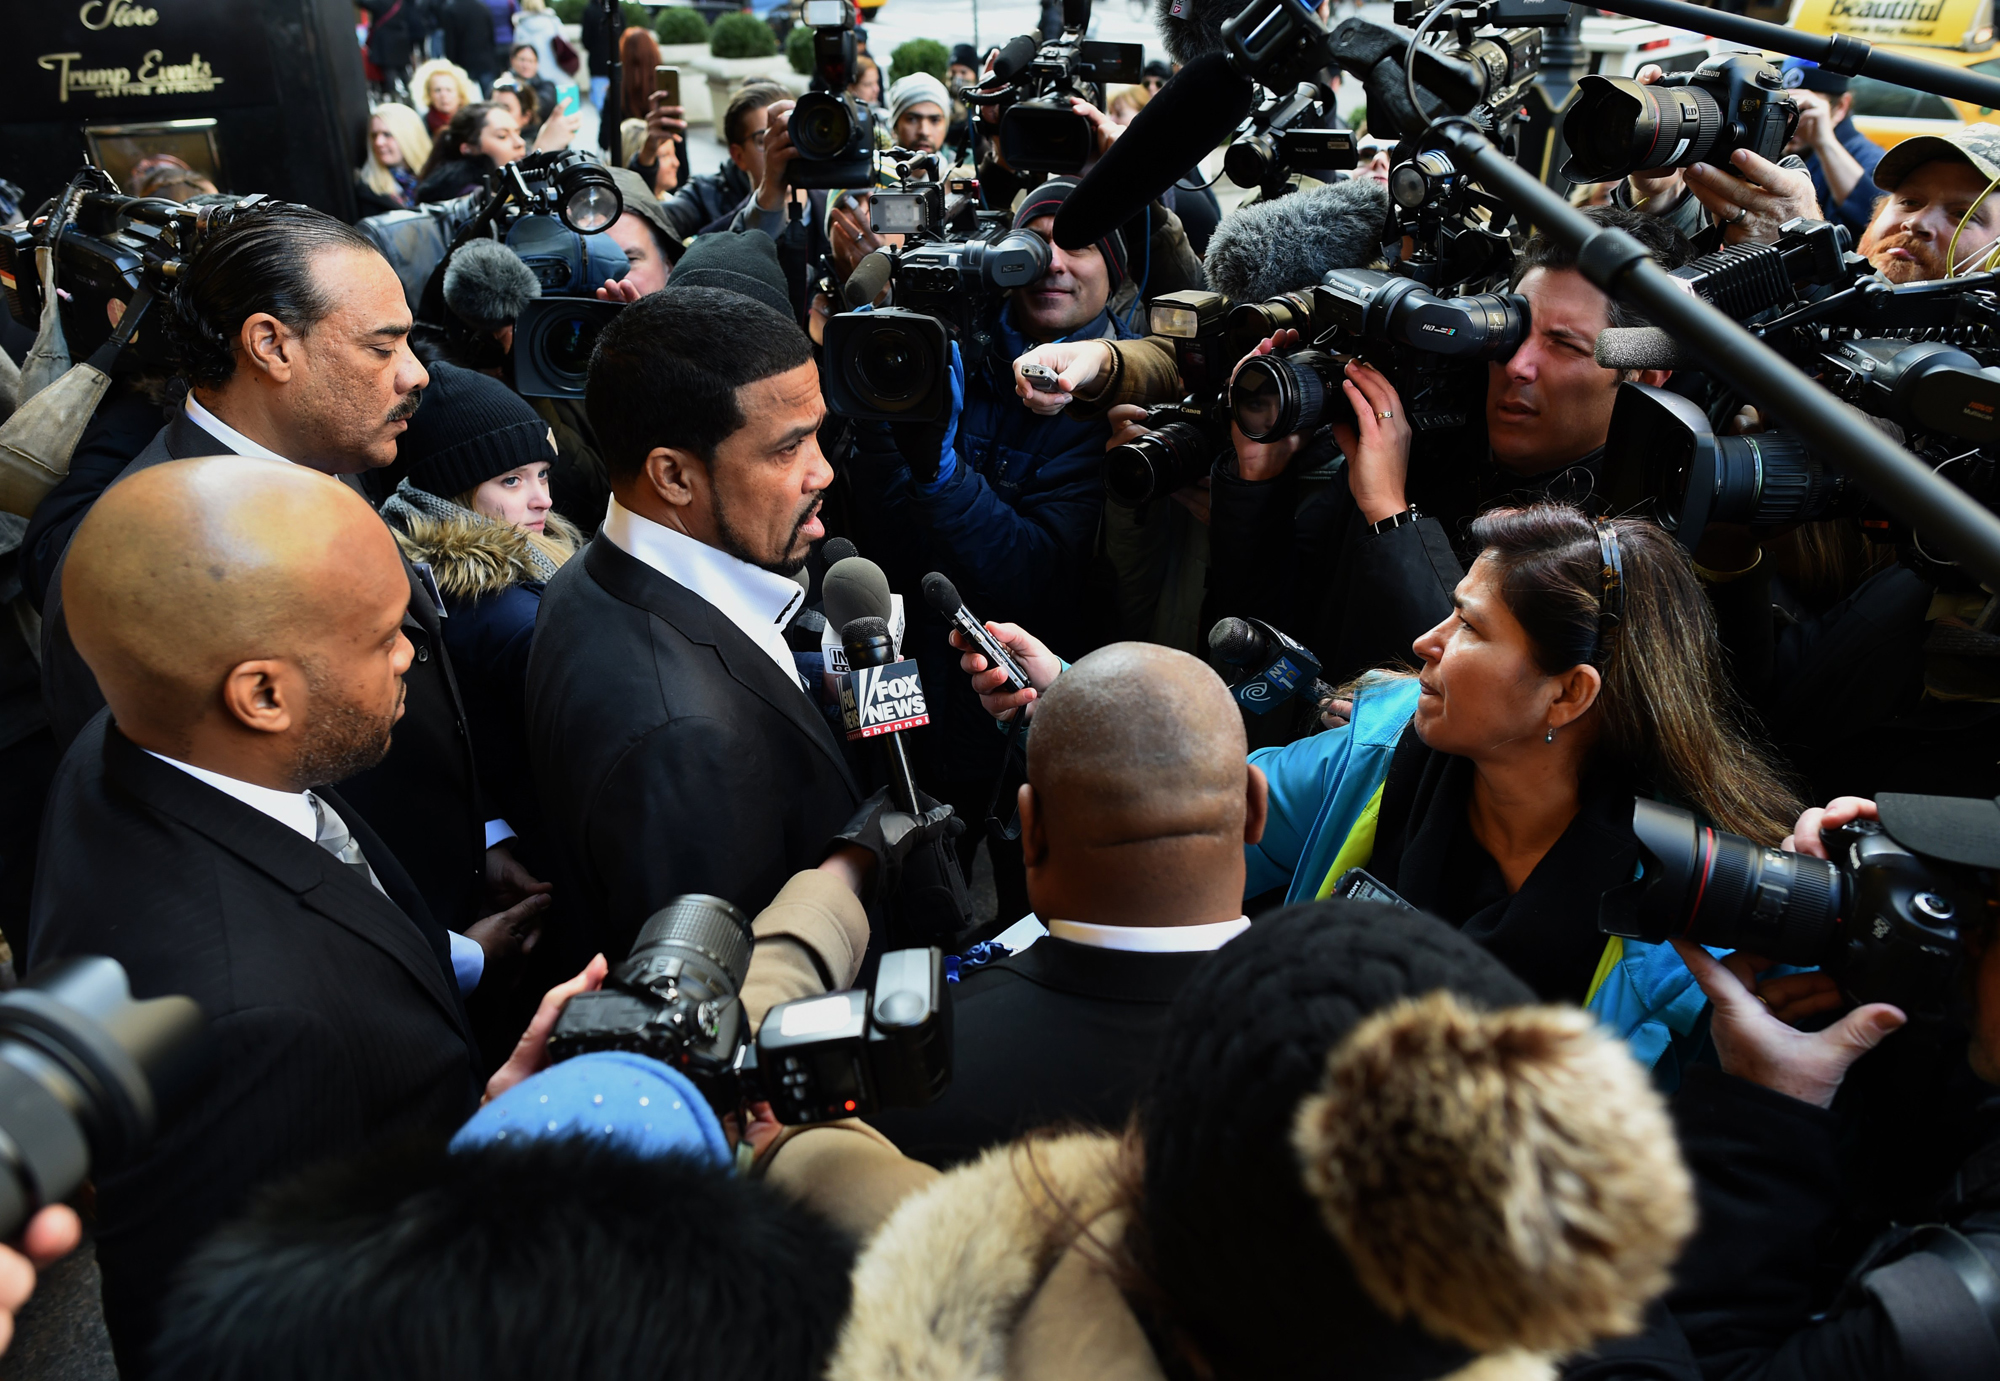 Dr. Darrell Scott arrives for a meeting at Trump Tower for a meeting with Republican hopeful Donald Trump in New York on November 30 ,2015. Donald Trump on November 29, 2015 abruptly scrapped a news conference designed to showcase his support from black religious leaders, as African-American pastors lined up to deny they were willing to endorse the Republican frontrunner.